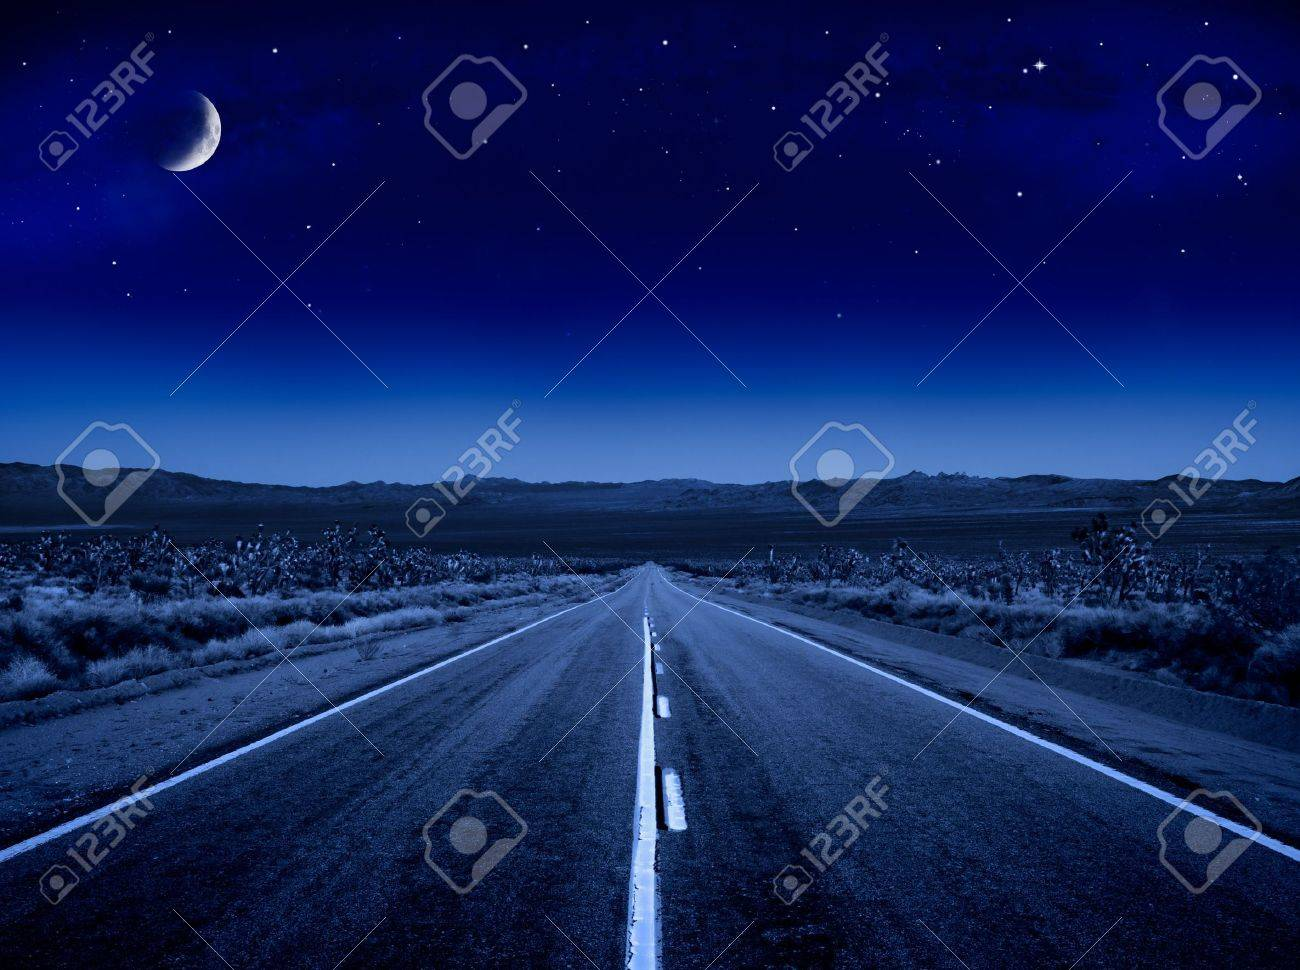 A desert road at night leading off into infinity. Stock Photo - 9728439